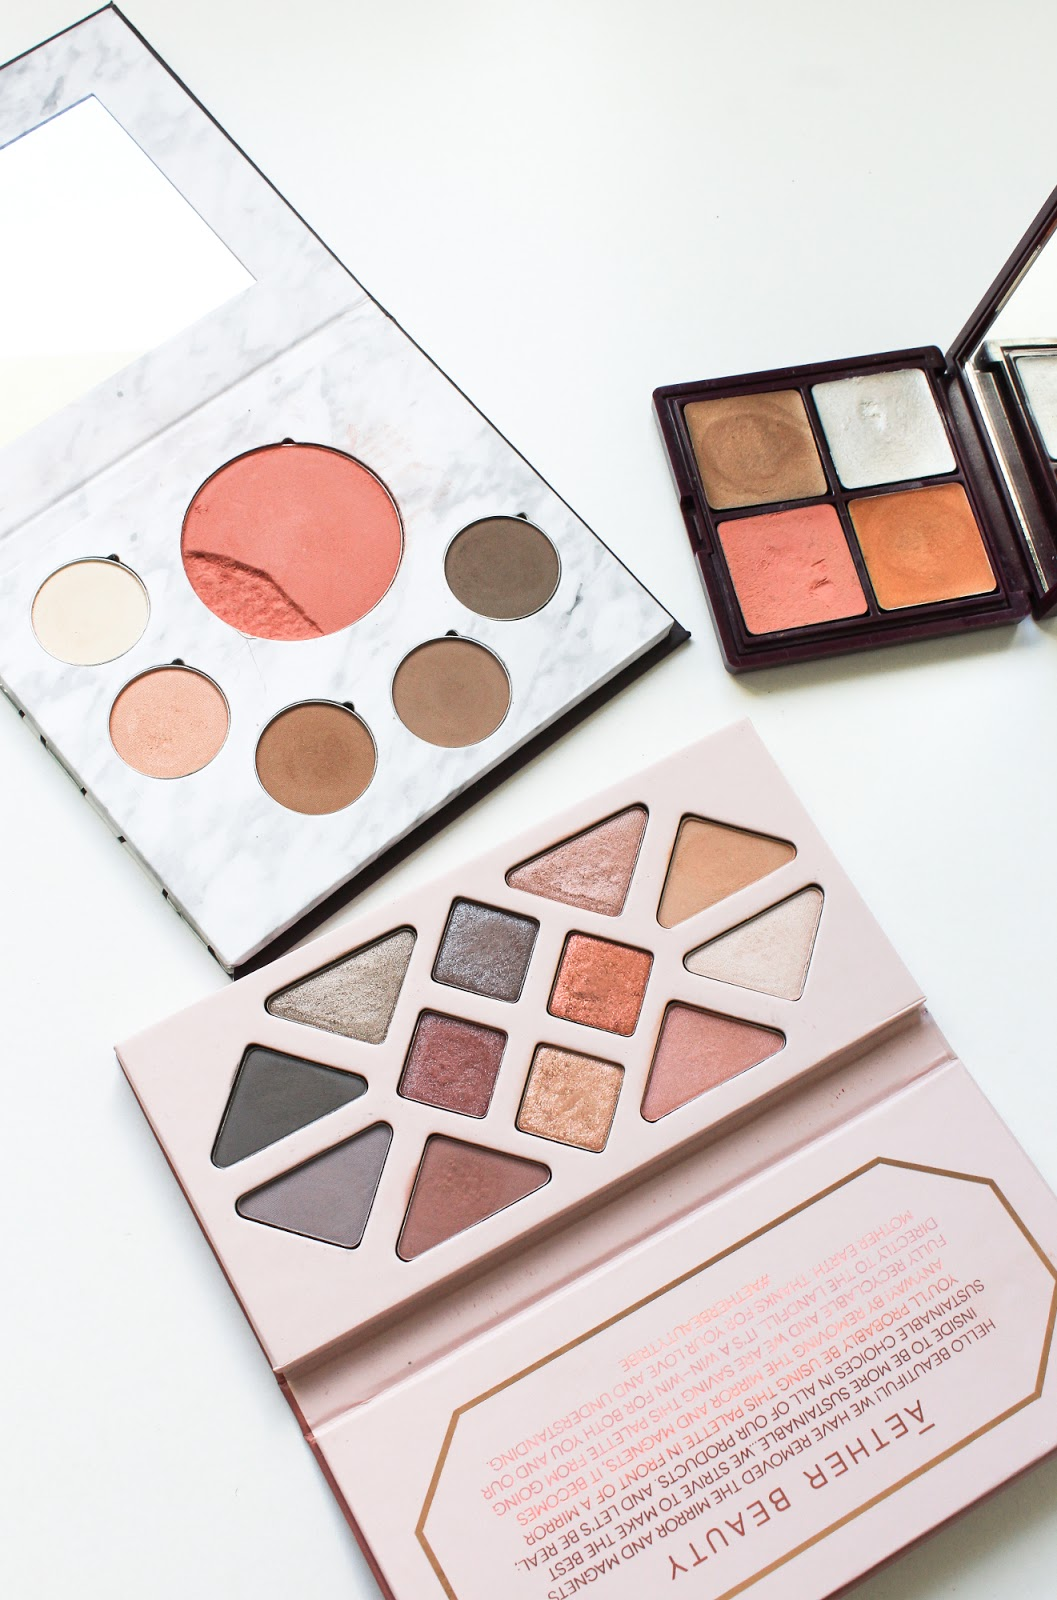 Natural Organic Makeup Eyeshadow Palette Aether, Fitglow, Nude and Noir